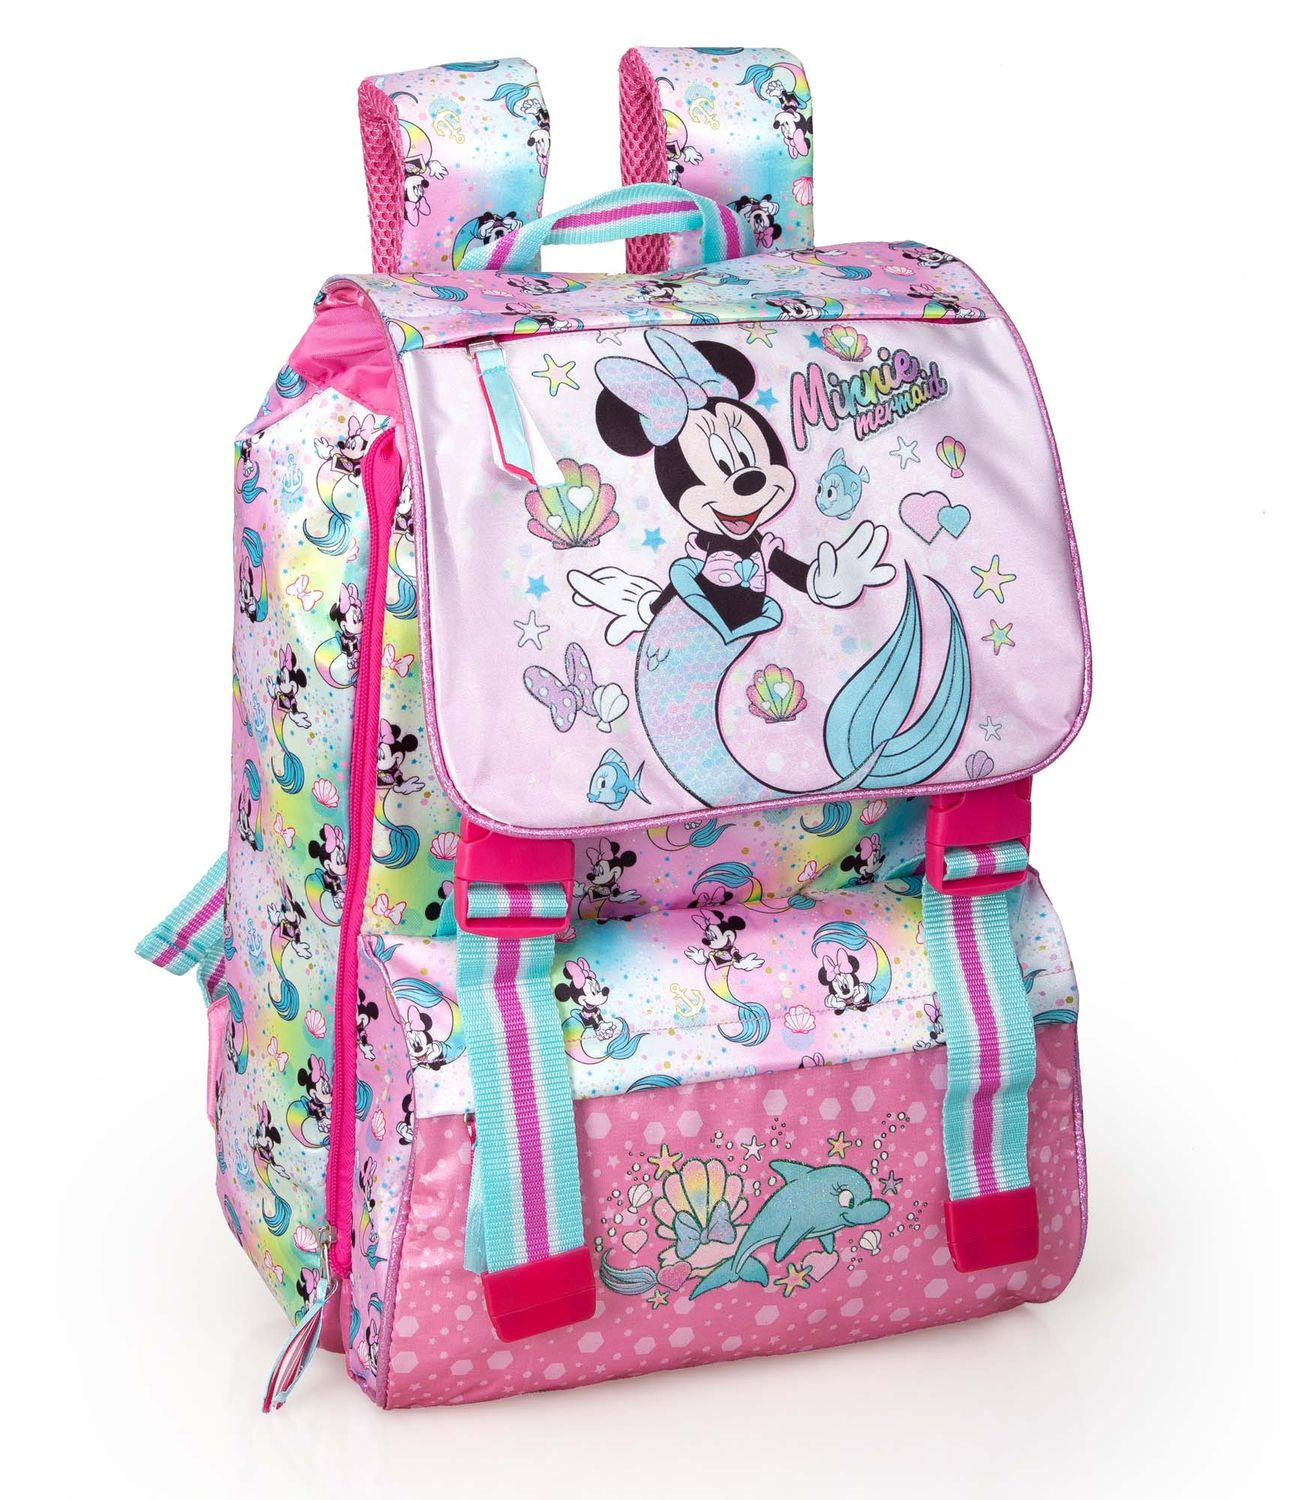 Extensible Backpack MINNIE MOUSE MERMAID – image 1